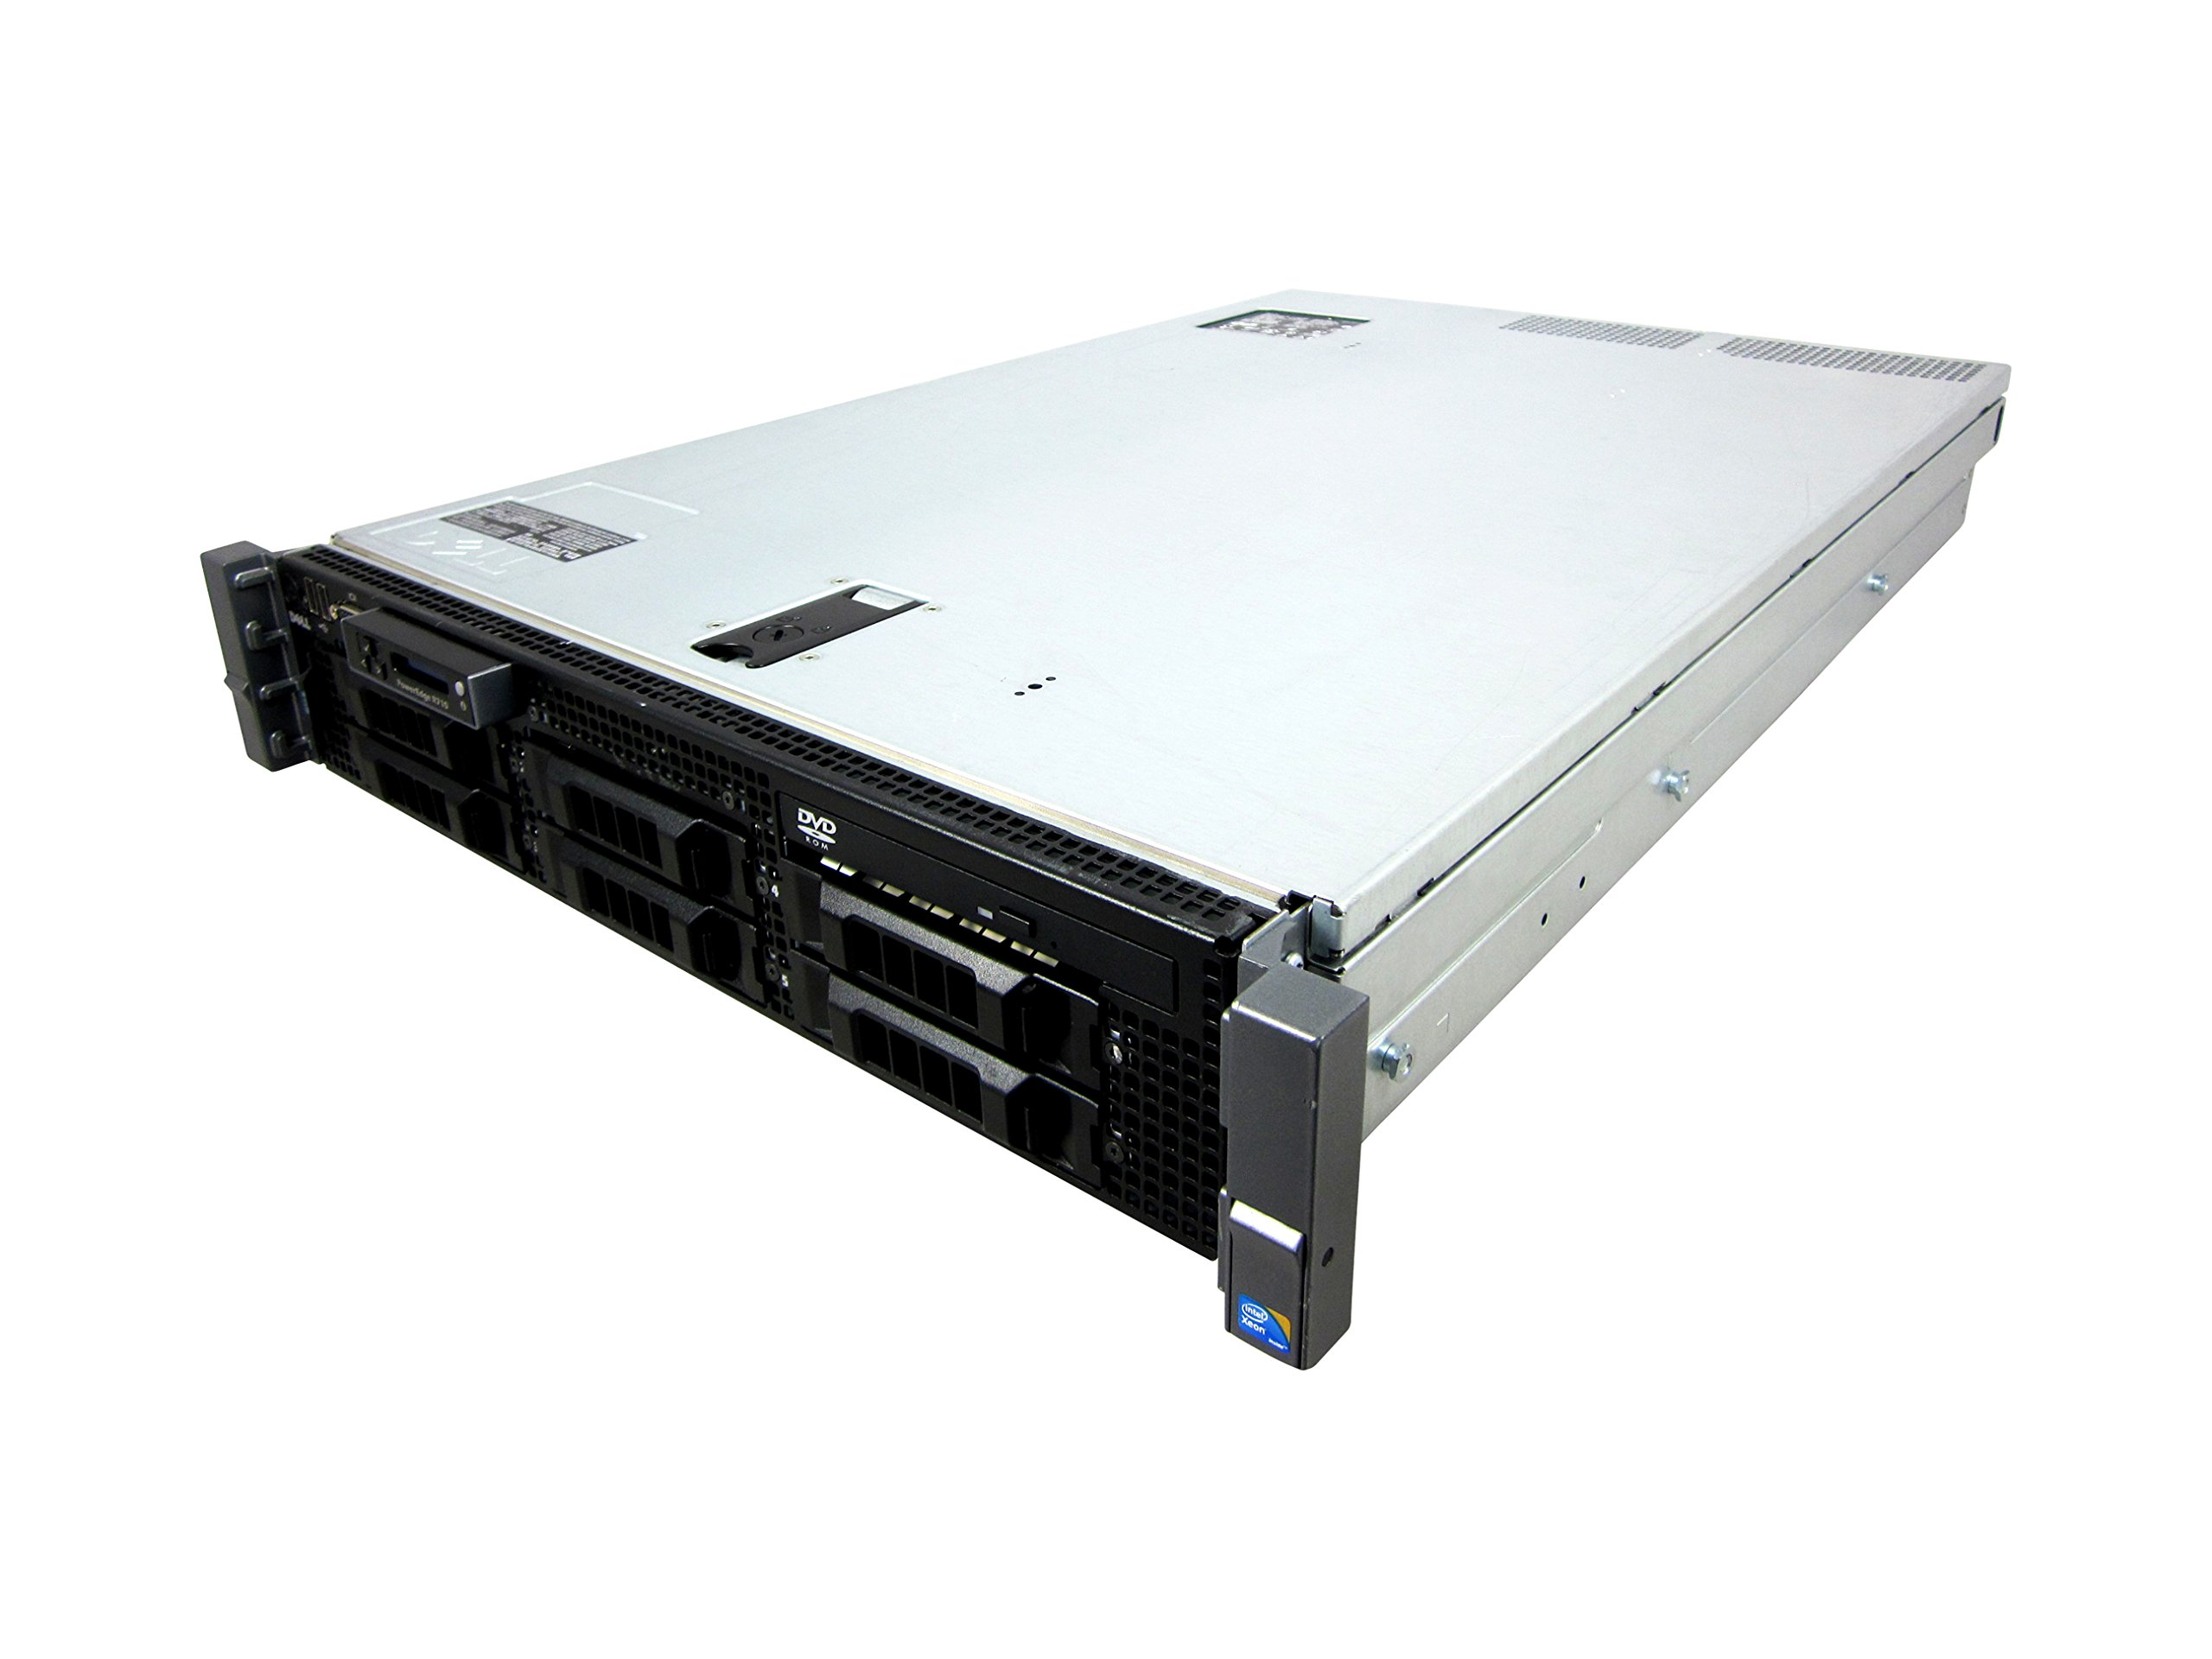 High-End Virtualization Server 12-Core 128GB RAM 12TB RAID Dell PowerEdge R710 (Certified Refurbished) by TechMikeNY (Image #4)